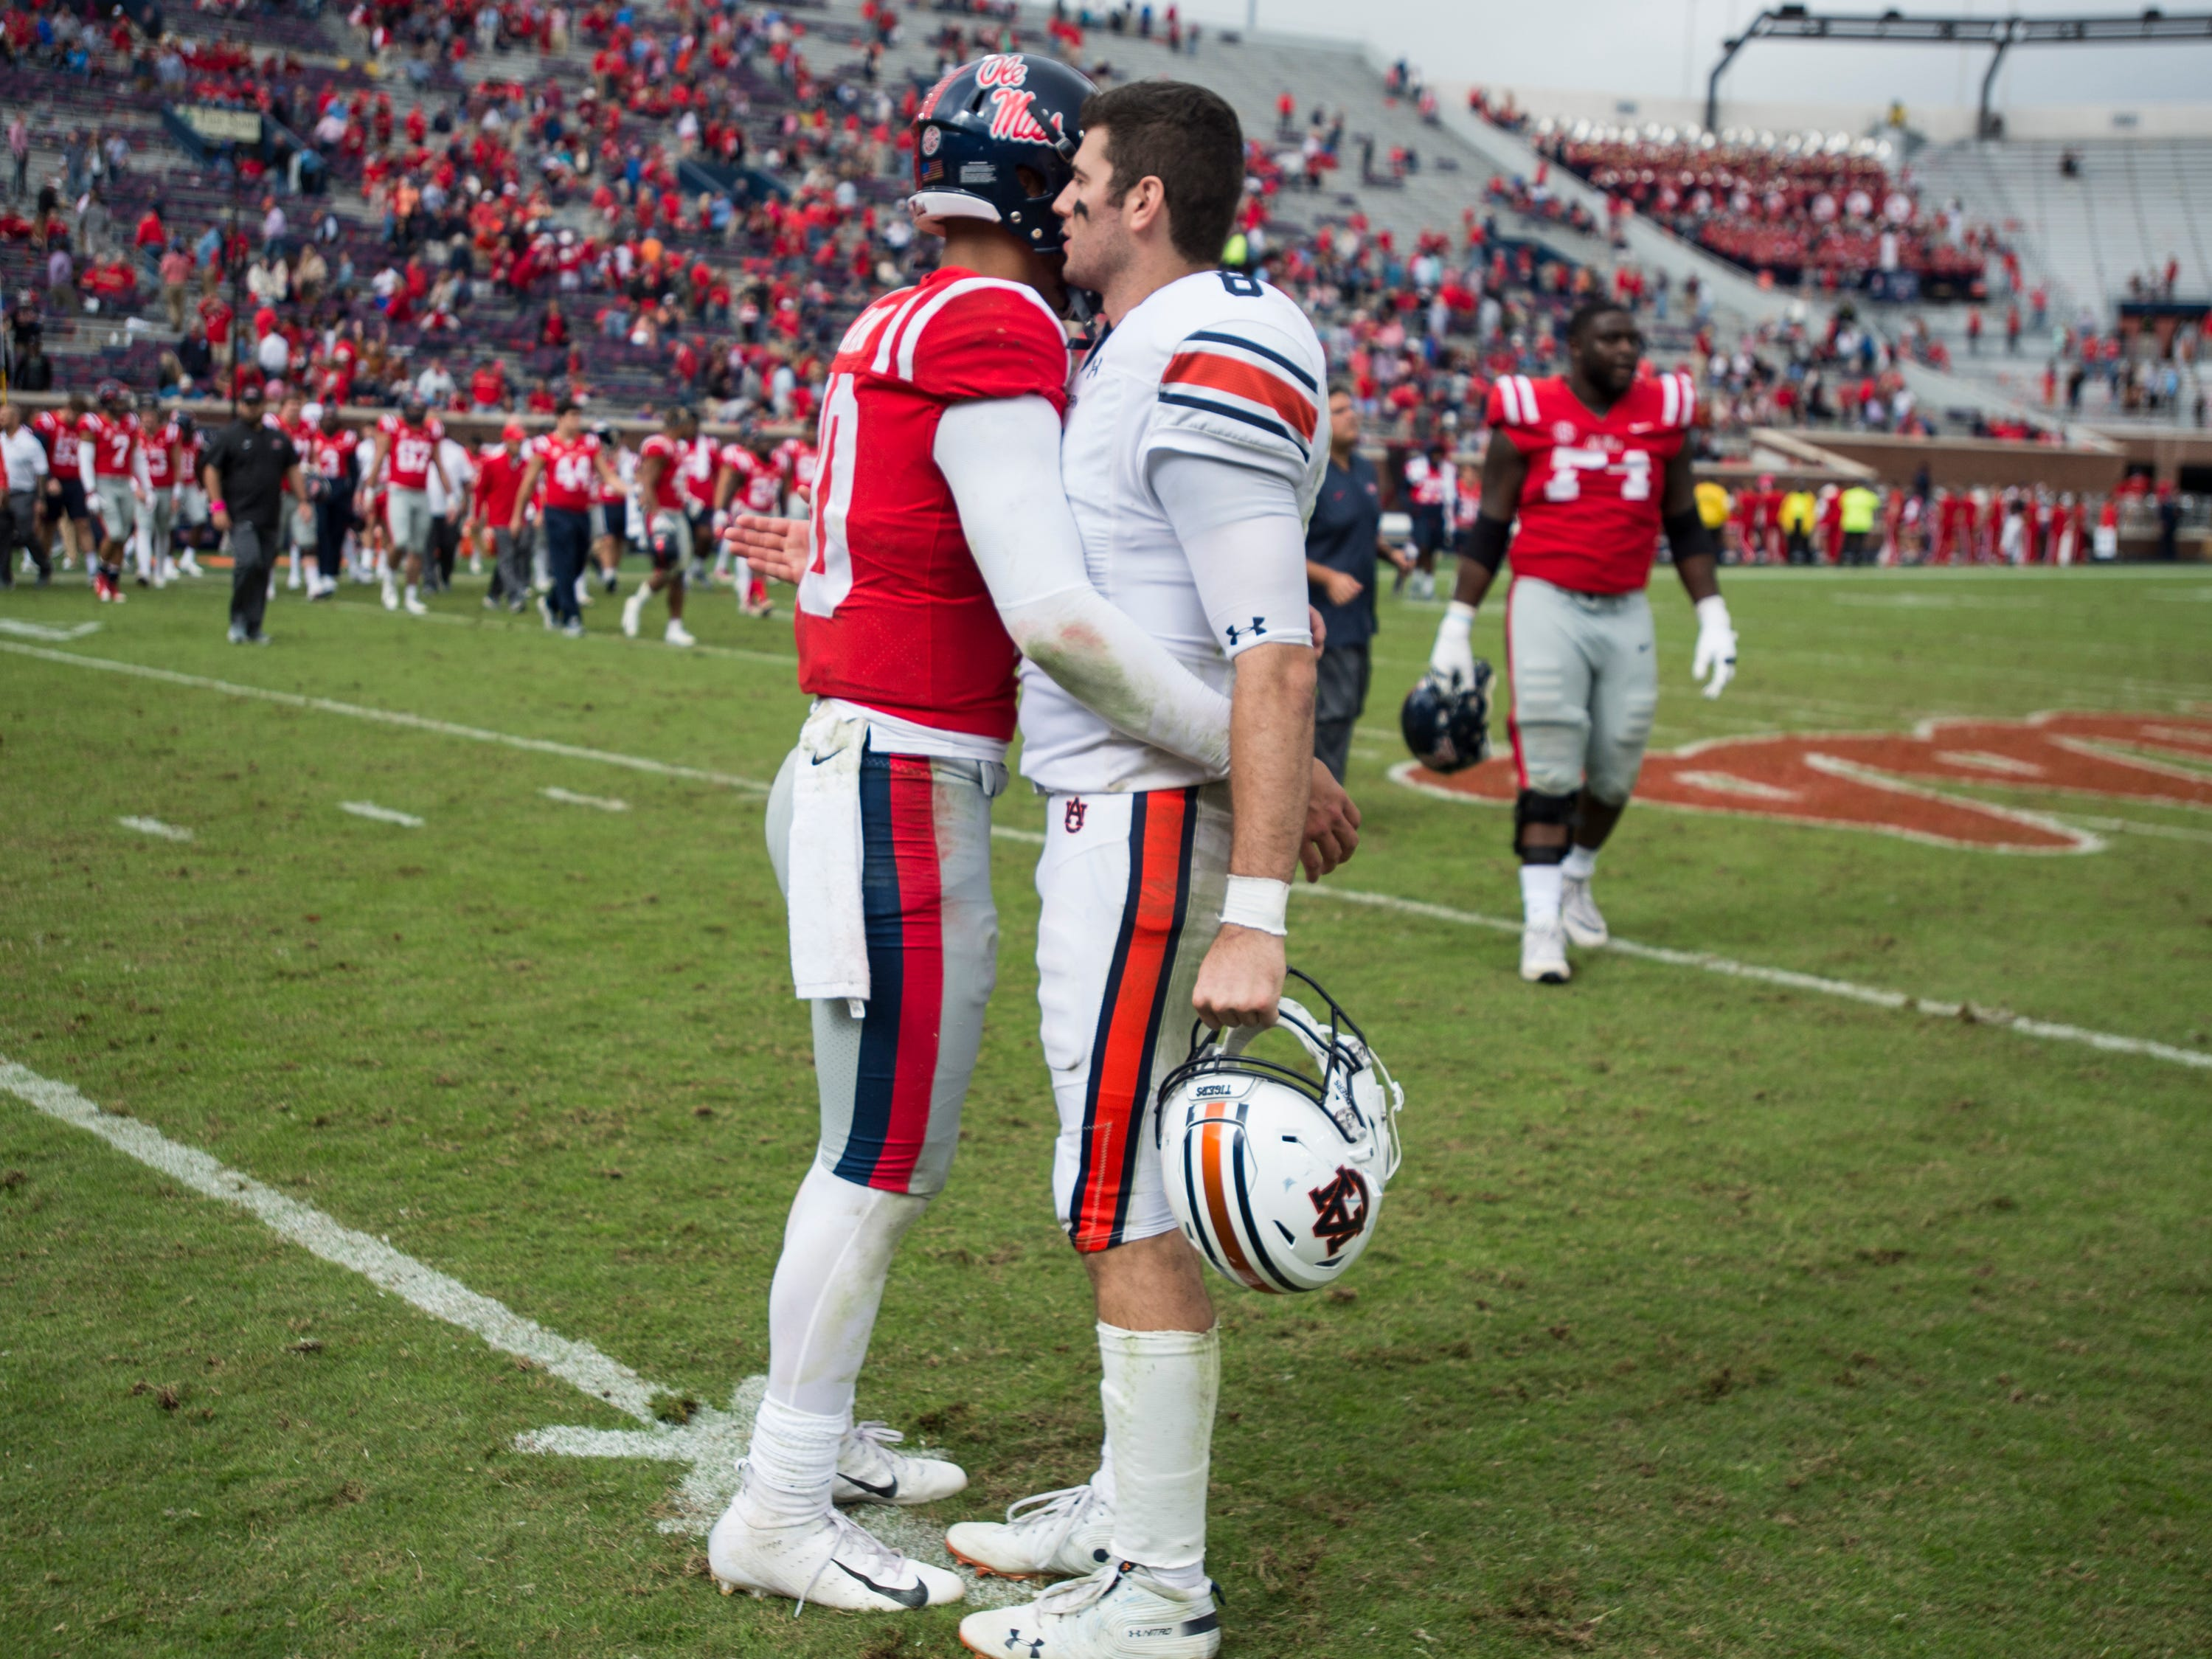 Ole Miss' Jordan Ta'amu (10) and Auburn's Jarrett Stidham (8) hug on the field after the game at Vaught-Hemingway Stadium in Oxford, Miss., on Saturday, Oct. 20, 2018. Auburn defeated Ole Miss 31-16.